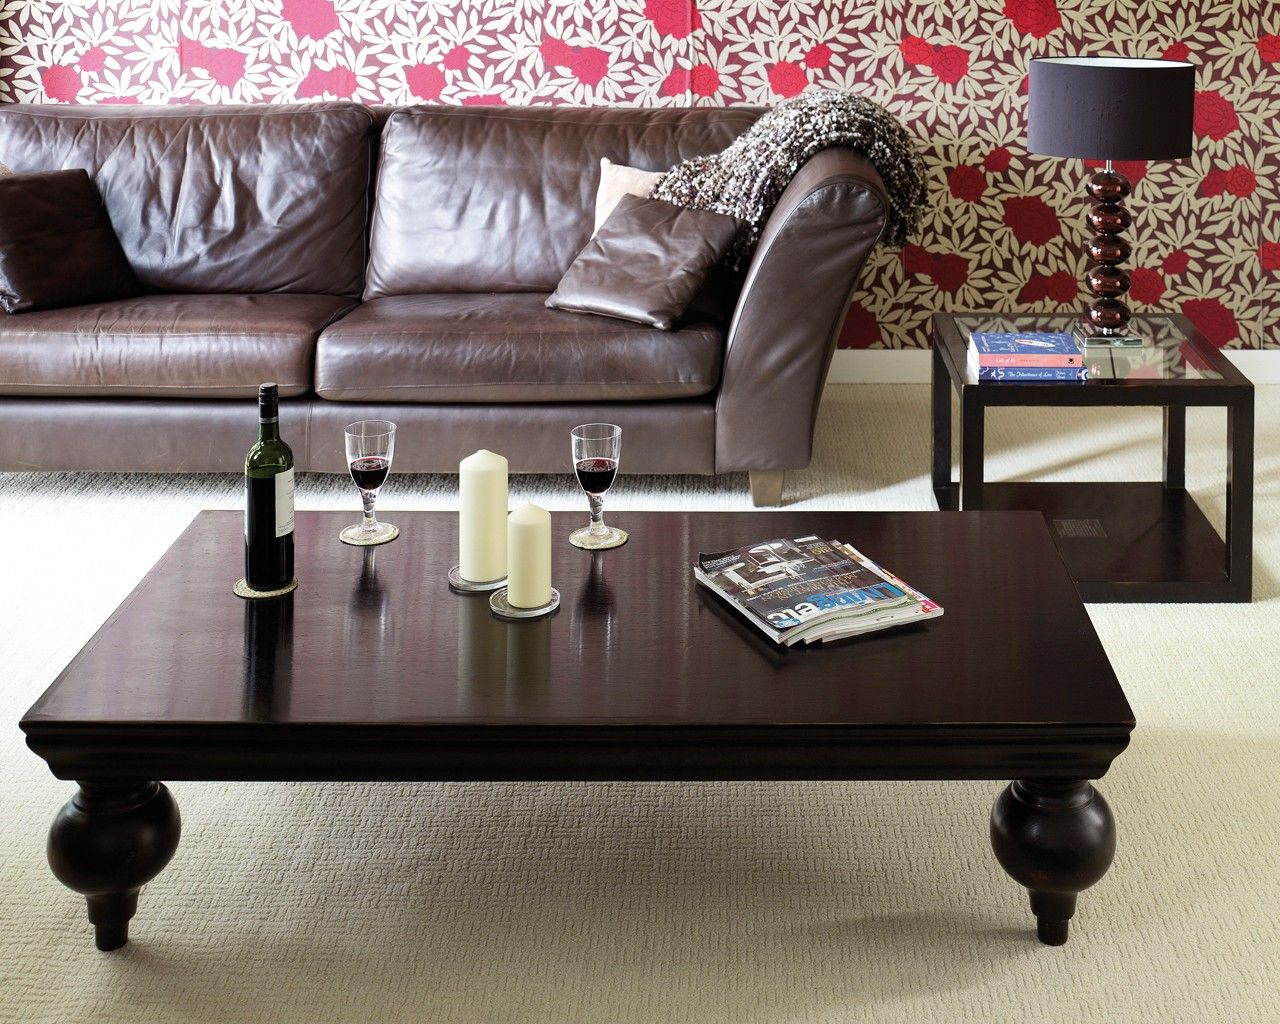 Lacquer Black coffee table pictures recommend dress for on every day in 2019